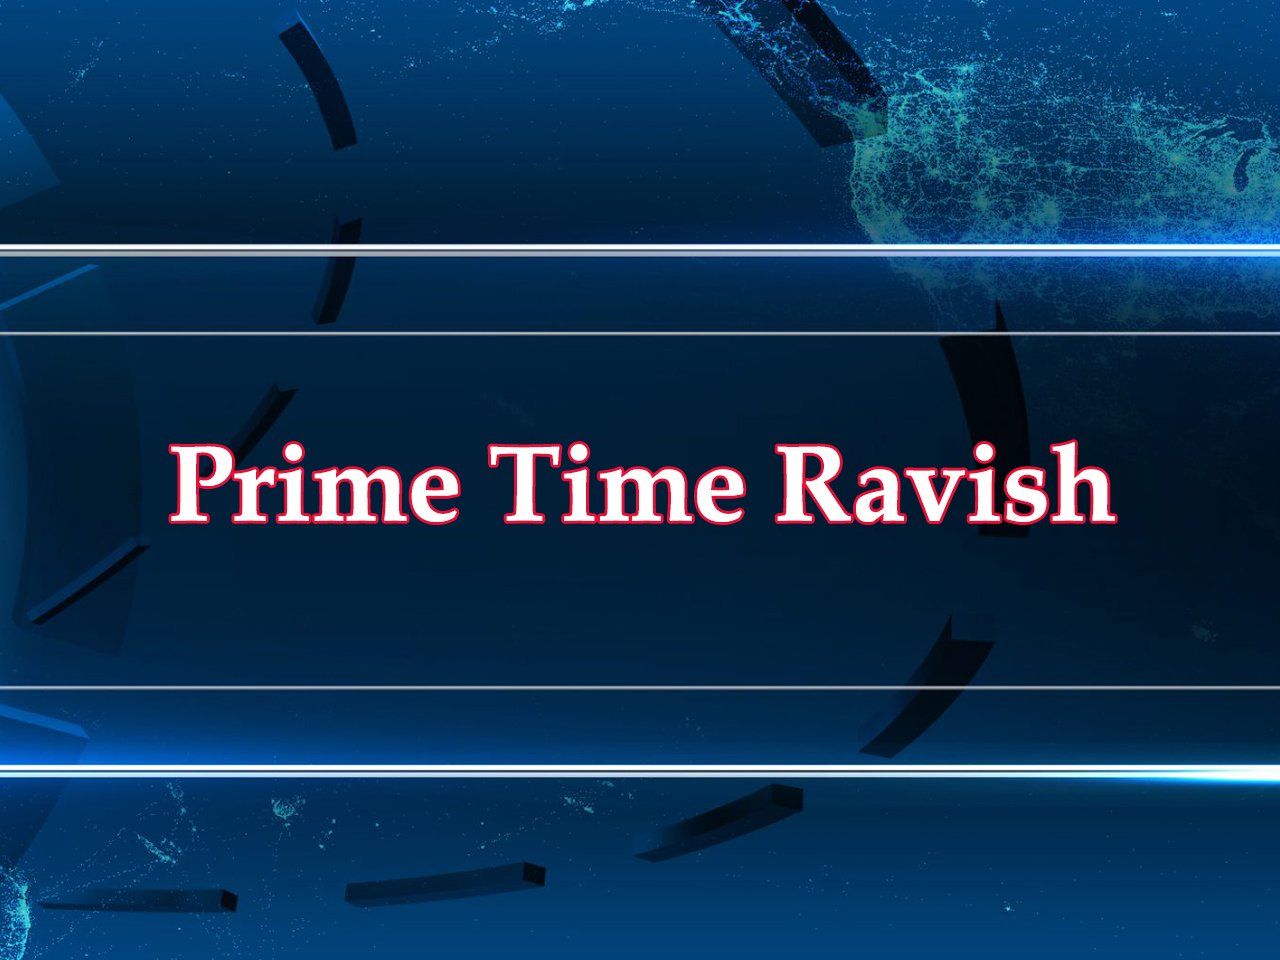 Prime Time Ravish-NDTV Profit